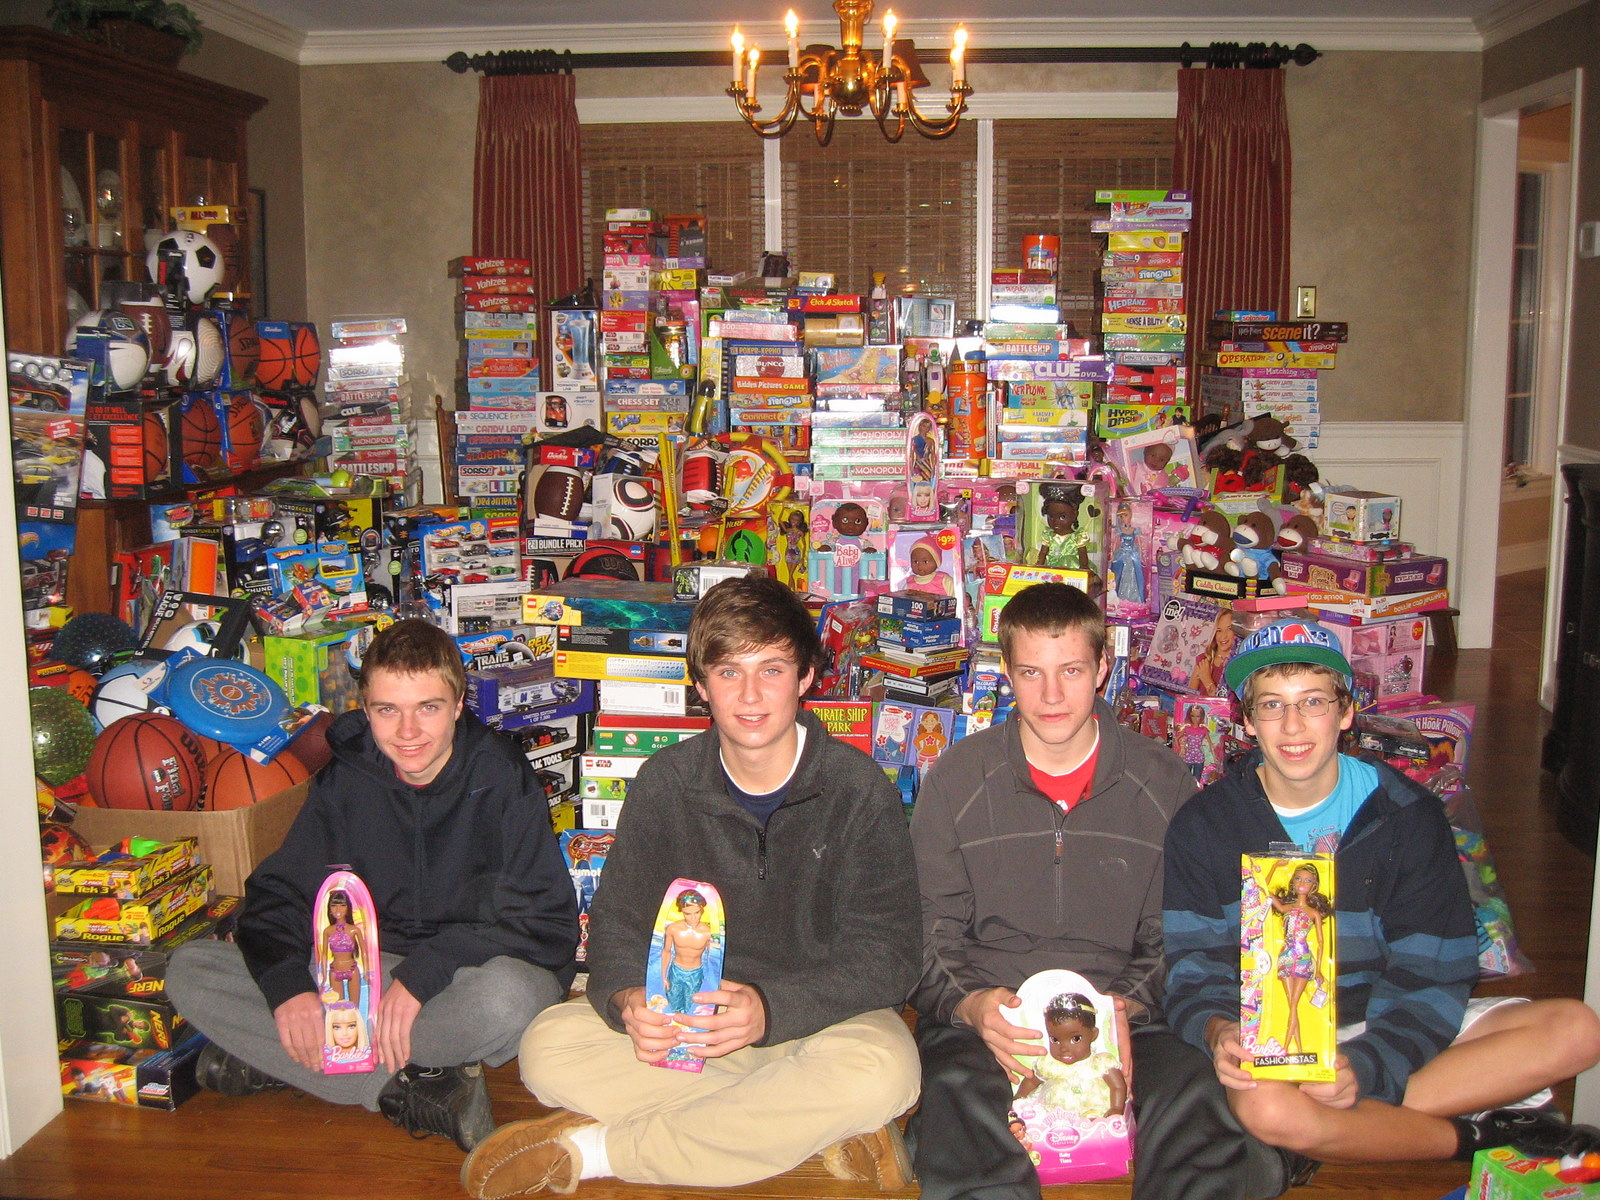 Toys For Ages 10 And Up : Andrew l hicks jr foundation christmas toy store